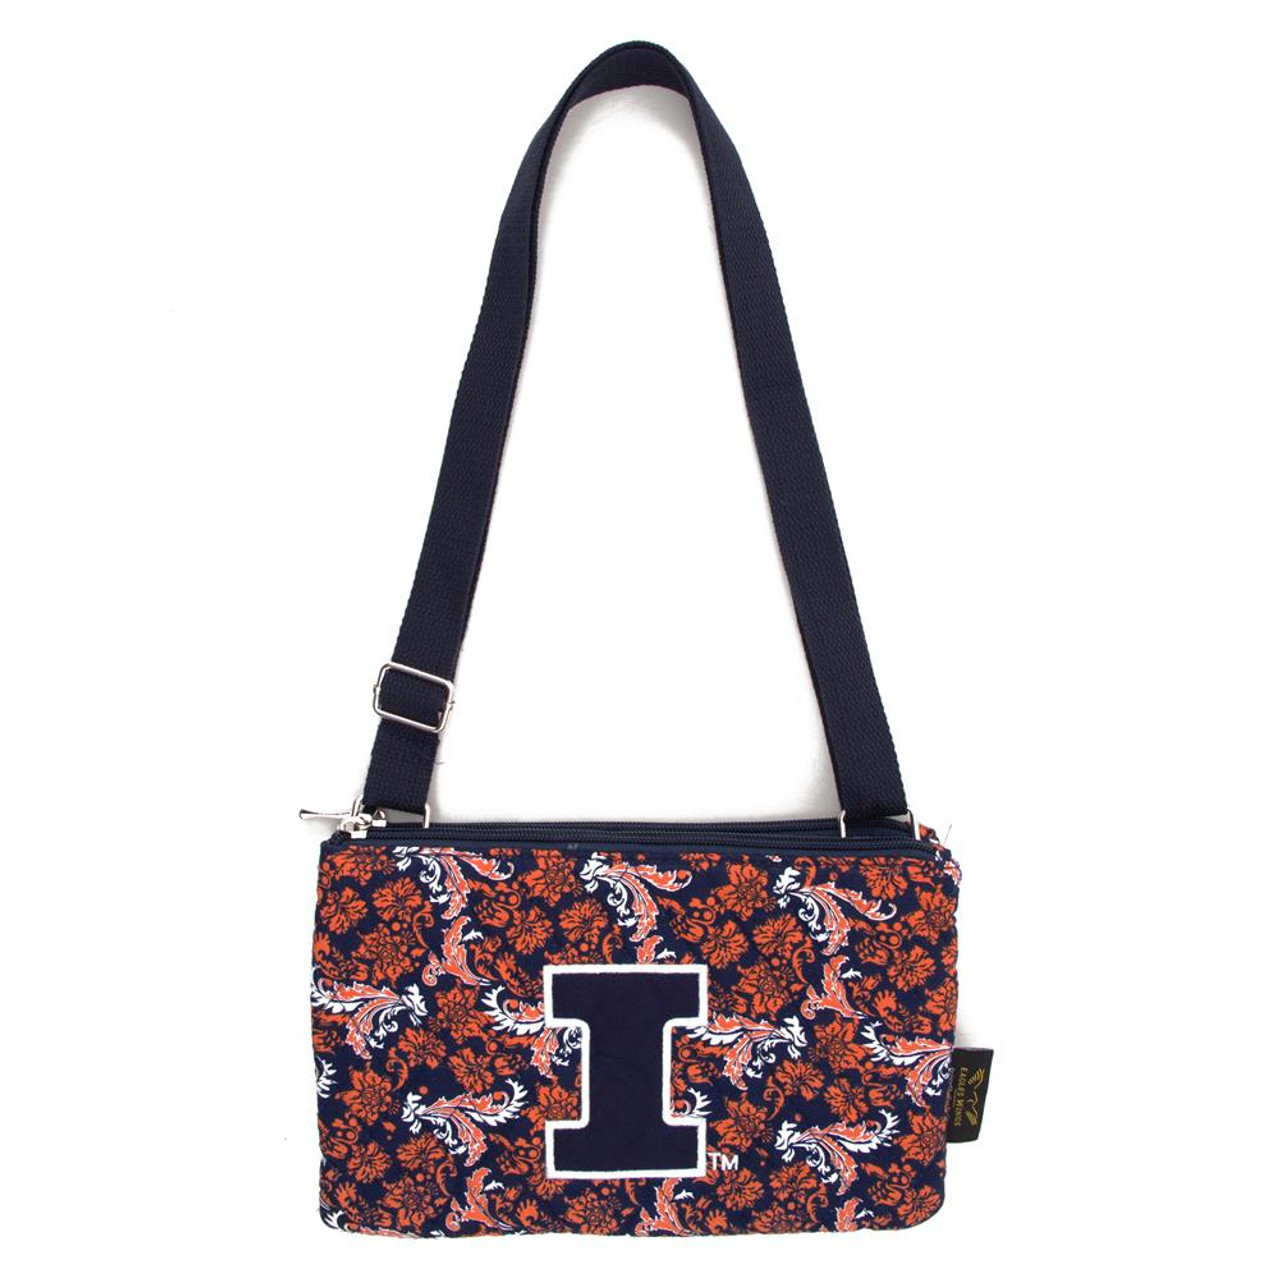 University of Illinois Purse Bloom Quilted Crossbody Handbag